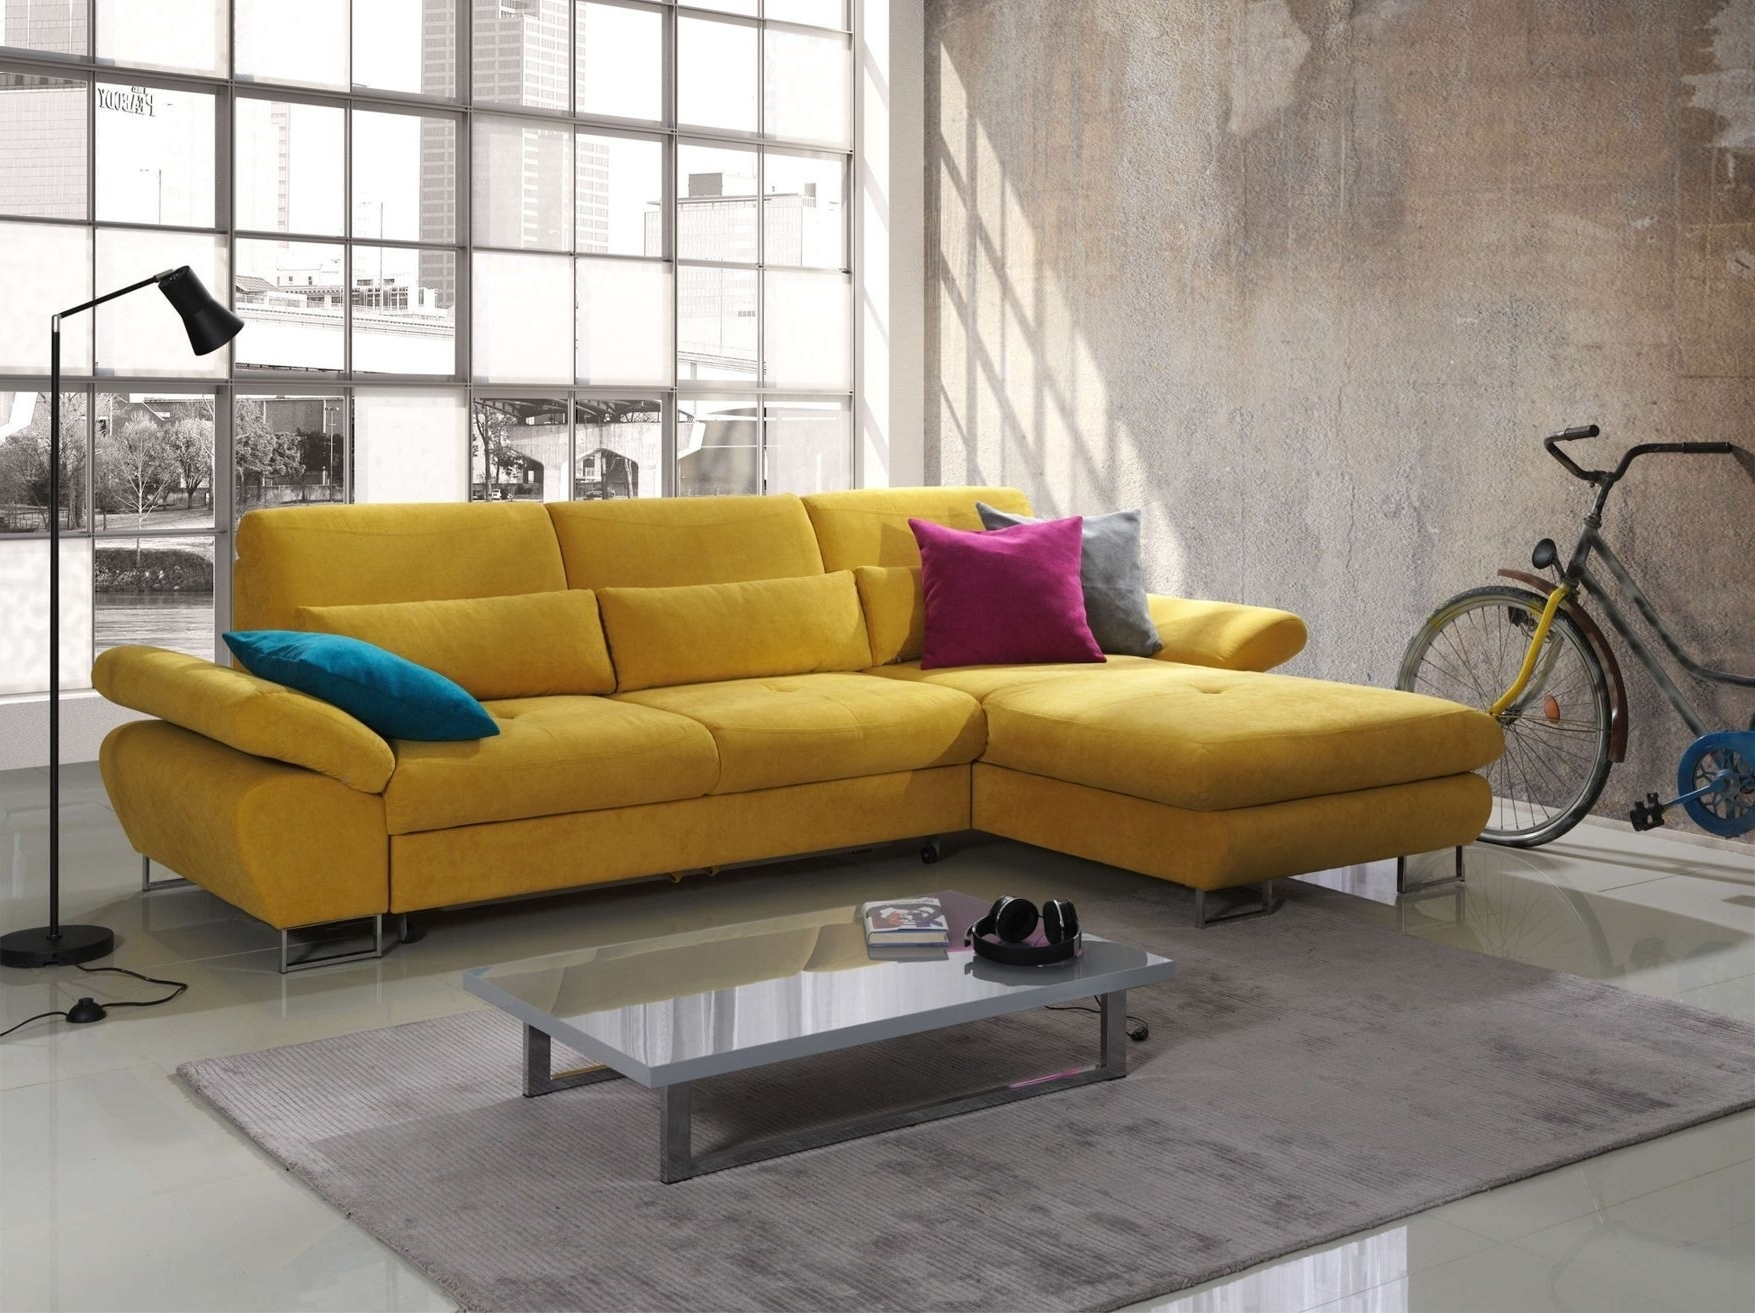 Famous Apartment Sectional Sofas With Chaise For Best Apartment Sectional Sofa With Chaise Images – Liltigertoo (View 9 of 15)